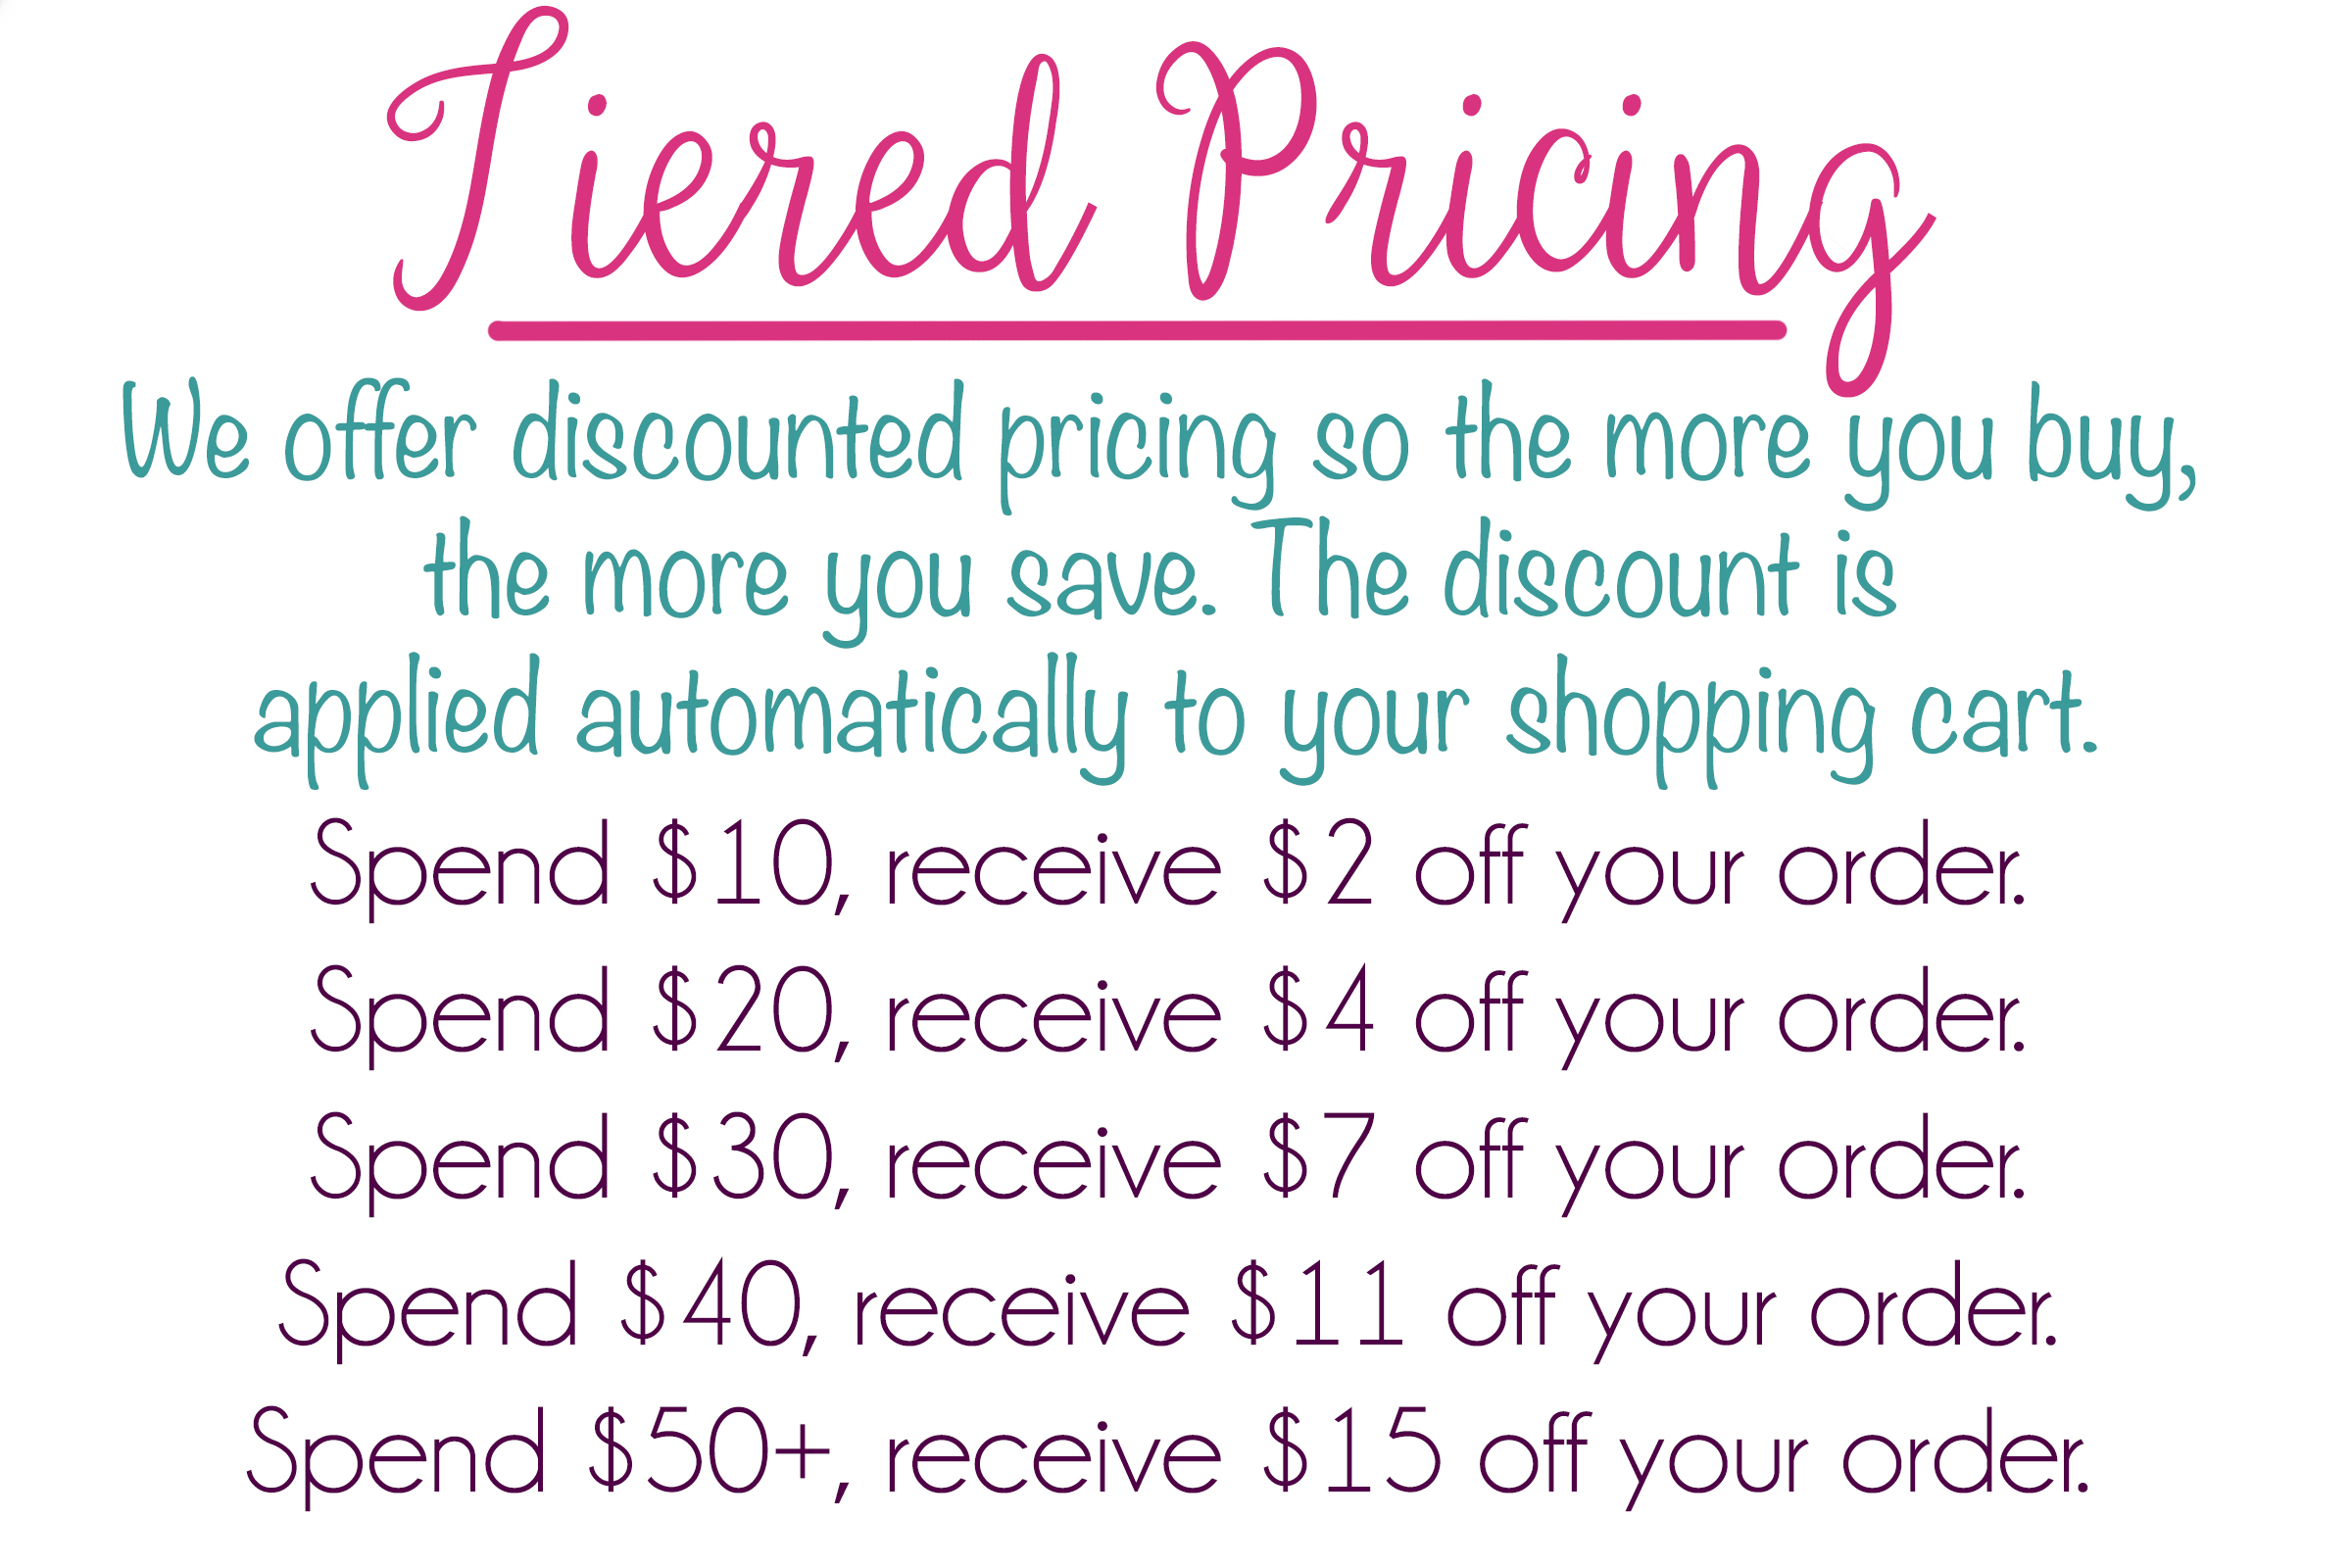 tiered-pricing-words2.jpg